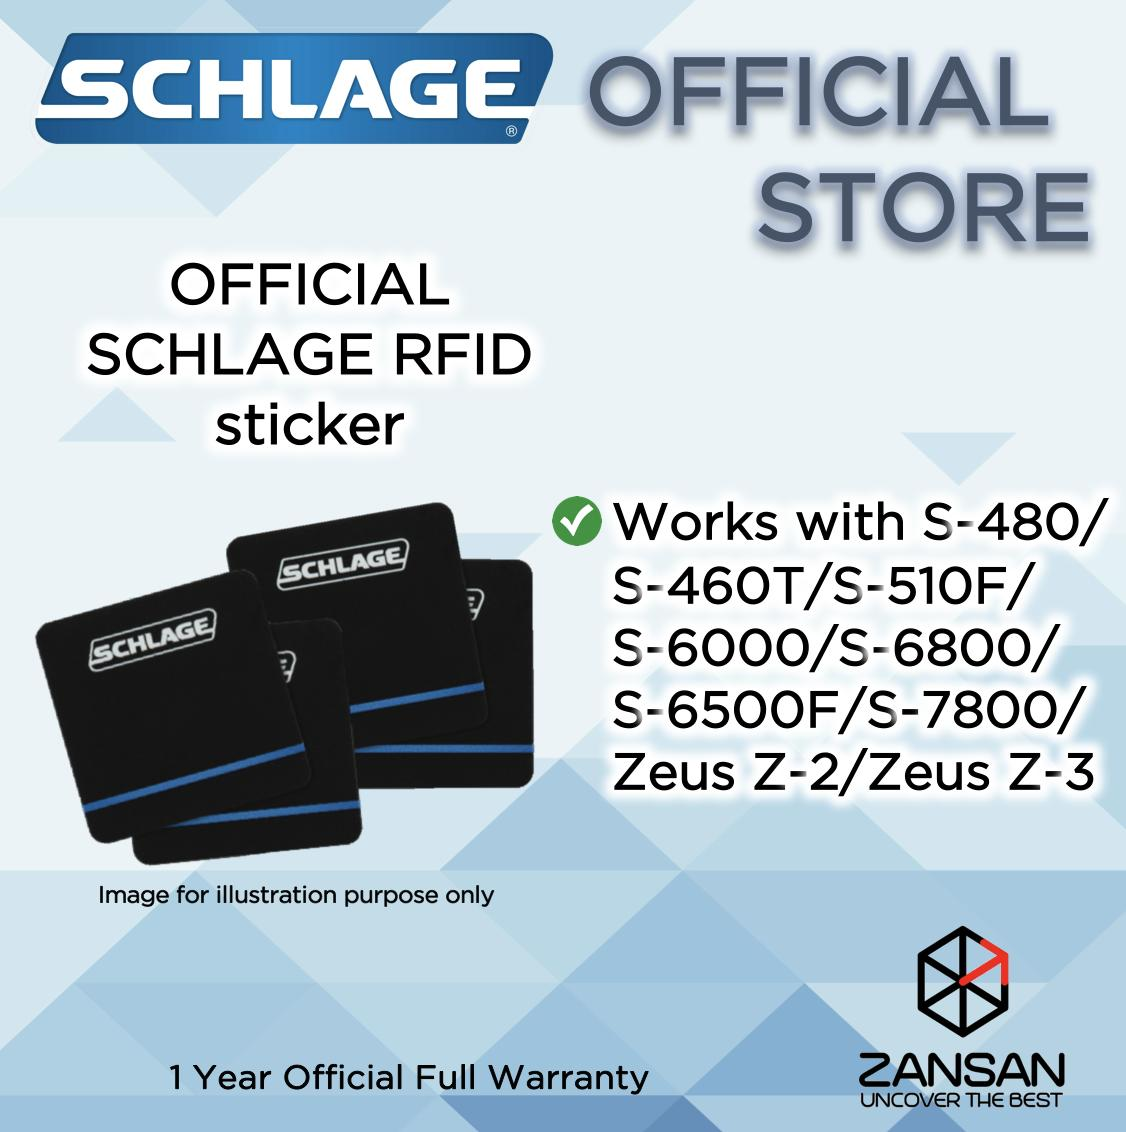 Schlage RFID Sticker With SCHLAGE Branding